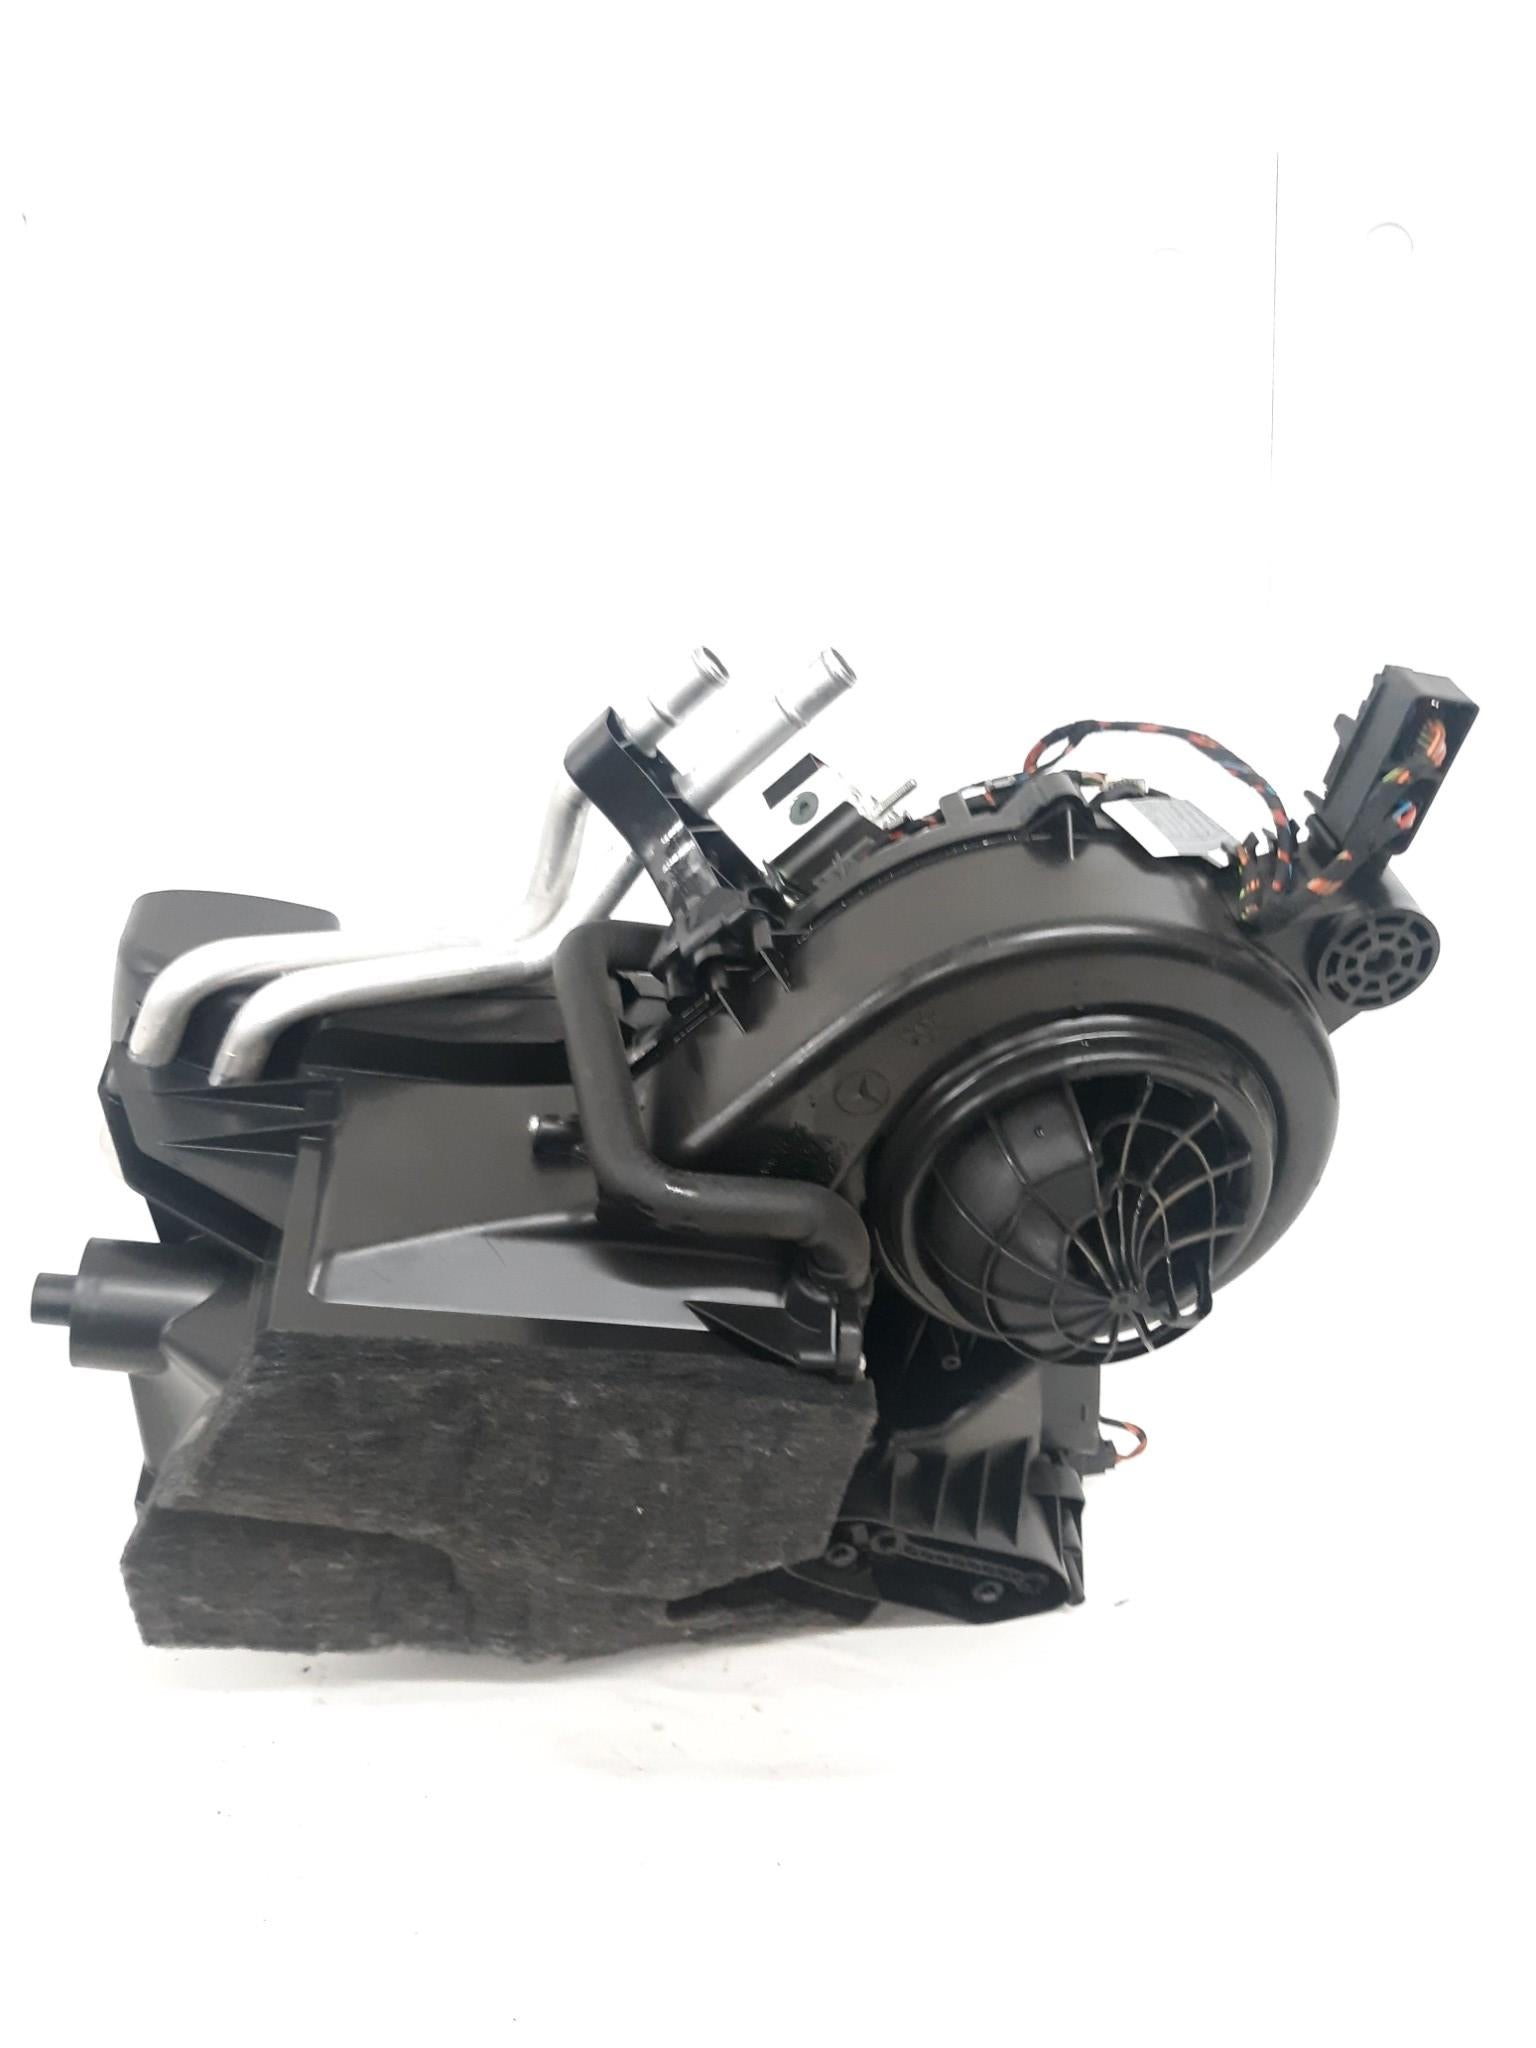 06-09 Mercedes W251 R350 R500 R550 Rear AC Cooling And Ventilation System OEM - Click Receive Auto Parts